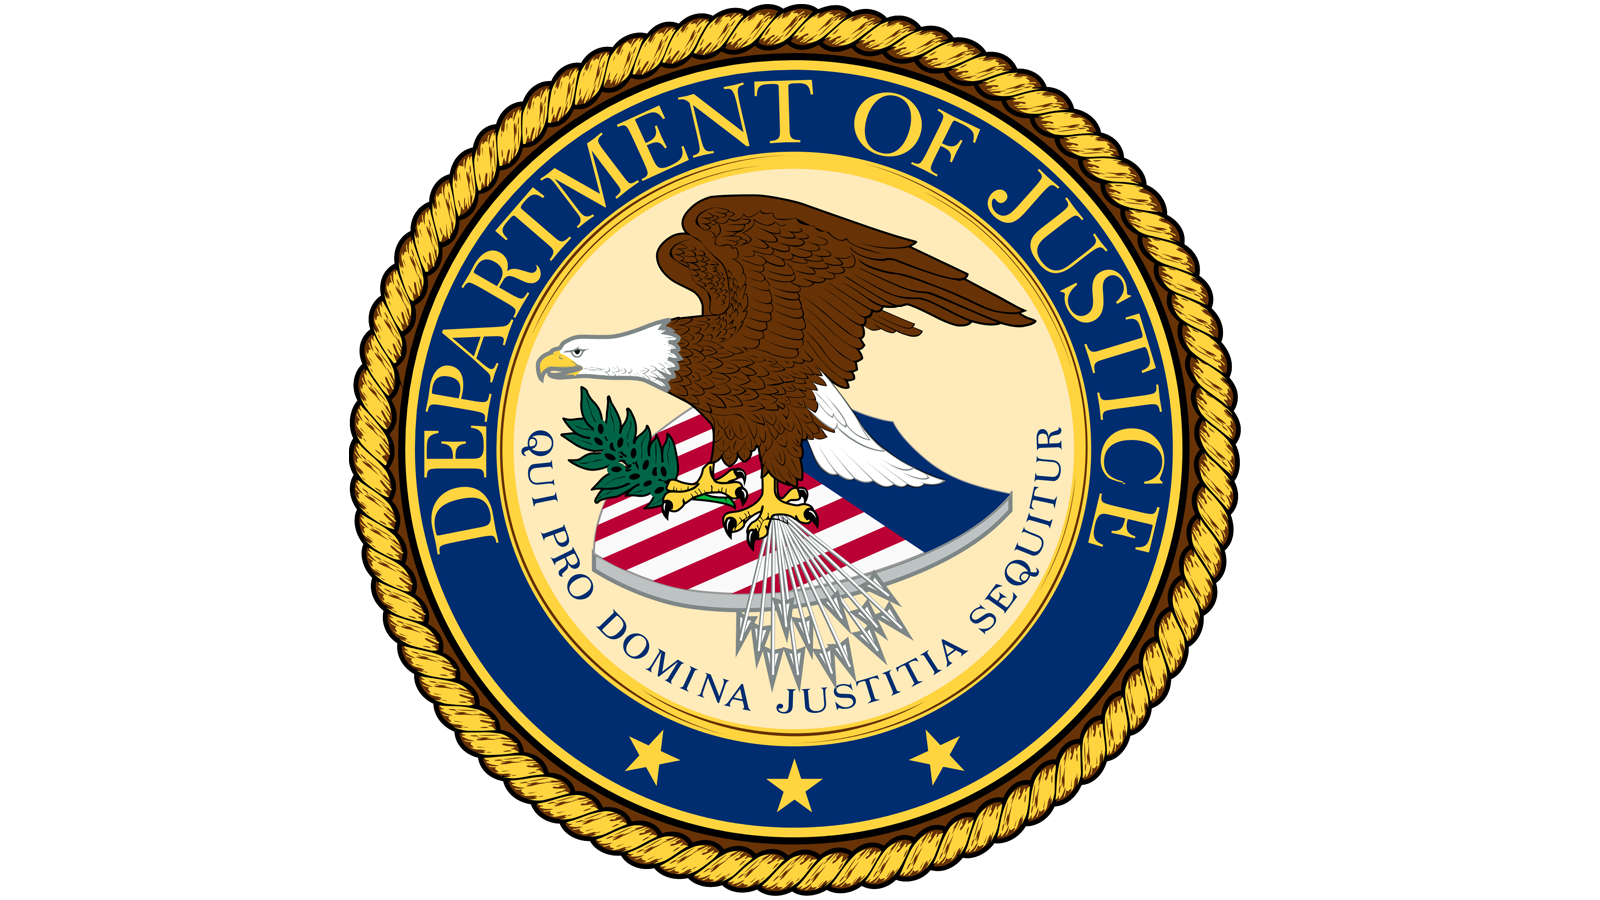 DOJ Answers Complaint; Recognizes Sexual Orientation Discrimination Under Federal Law